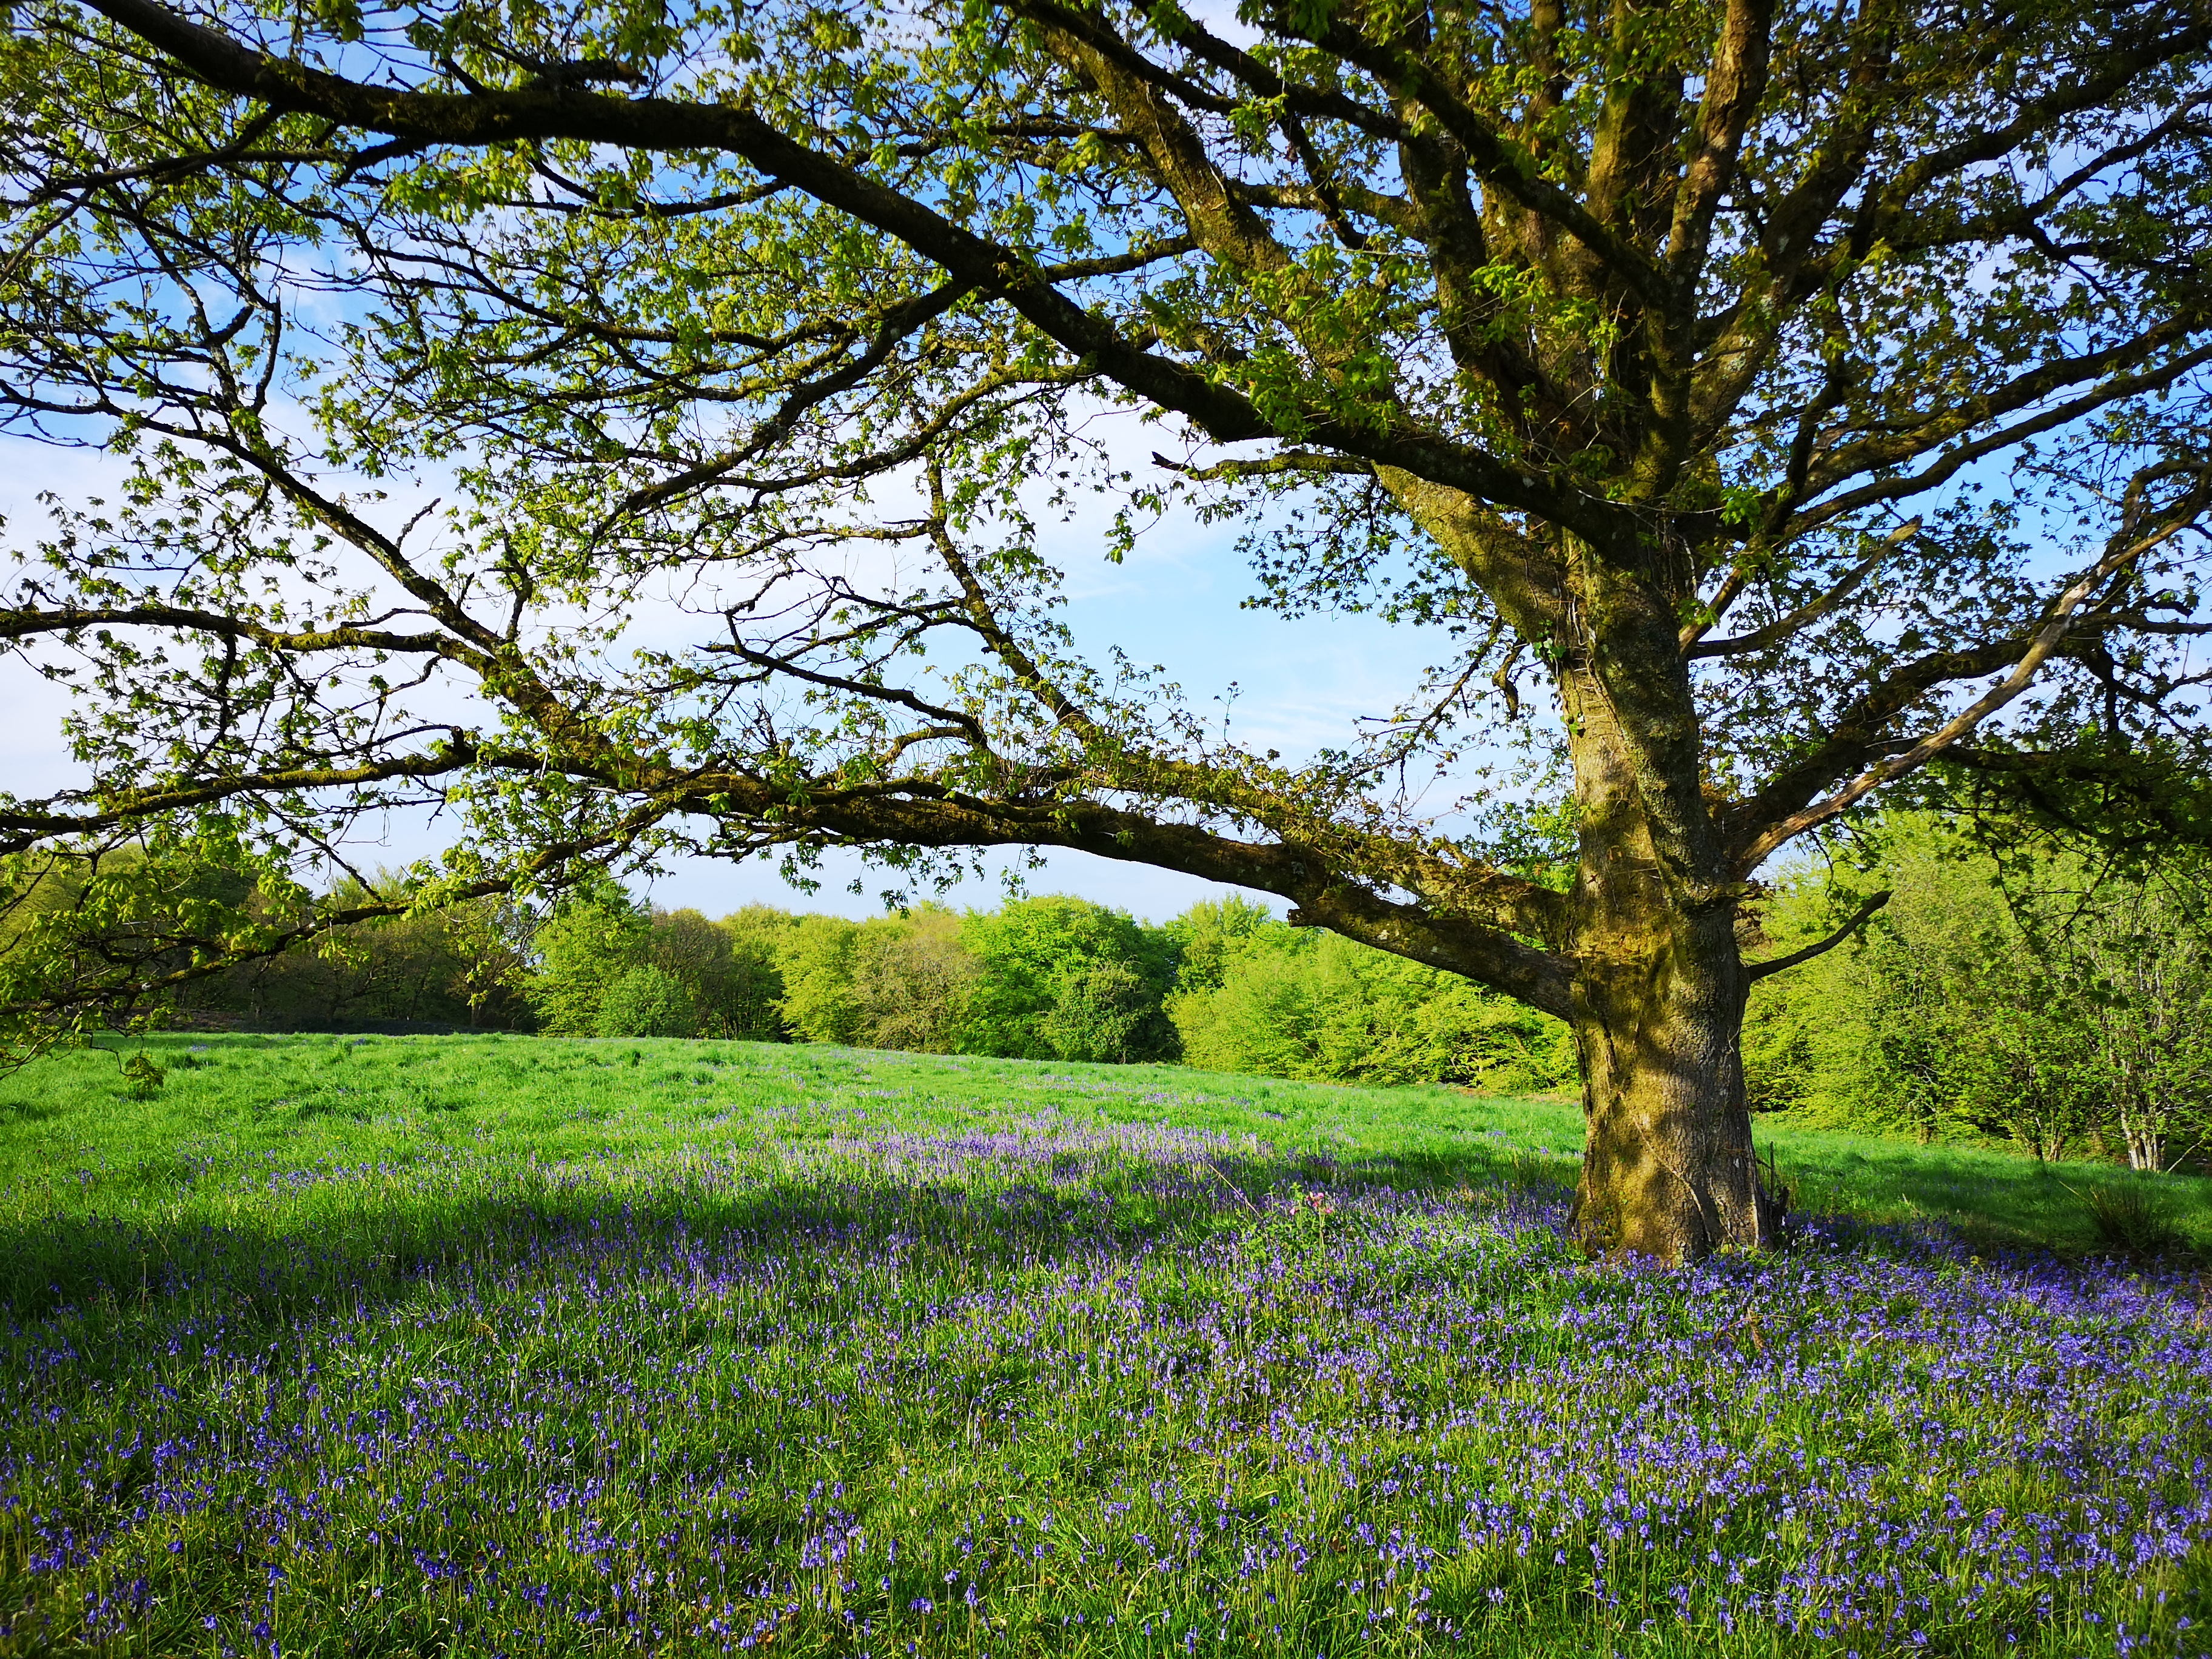 A tree in early spring with bluebells in flower beneath